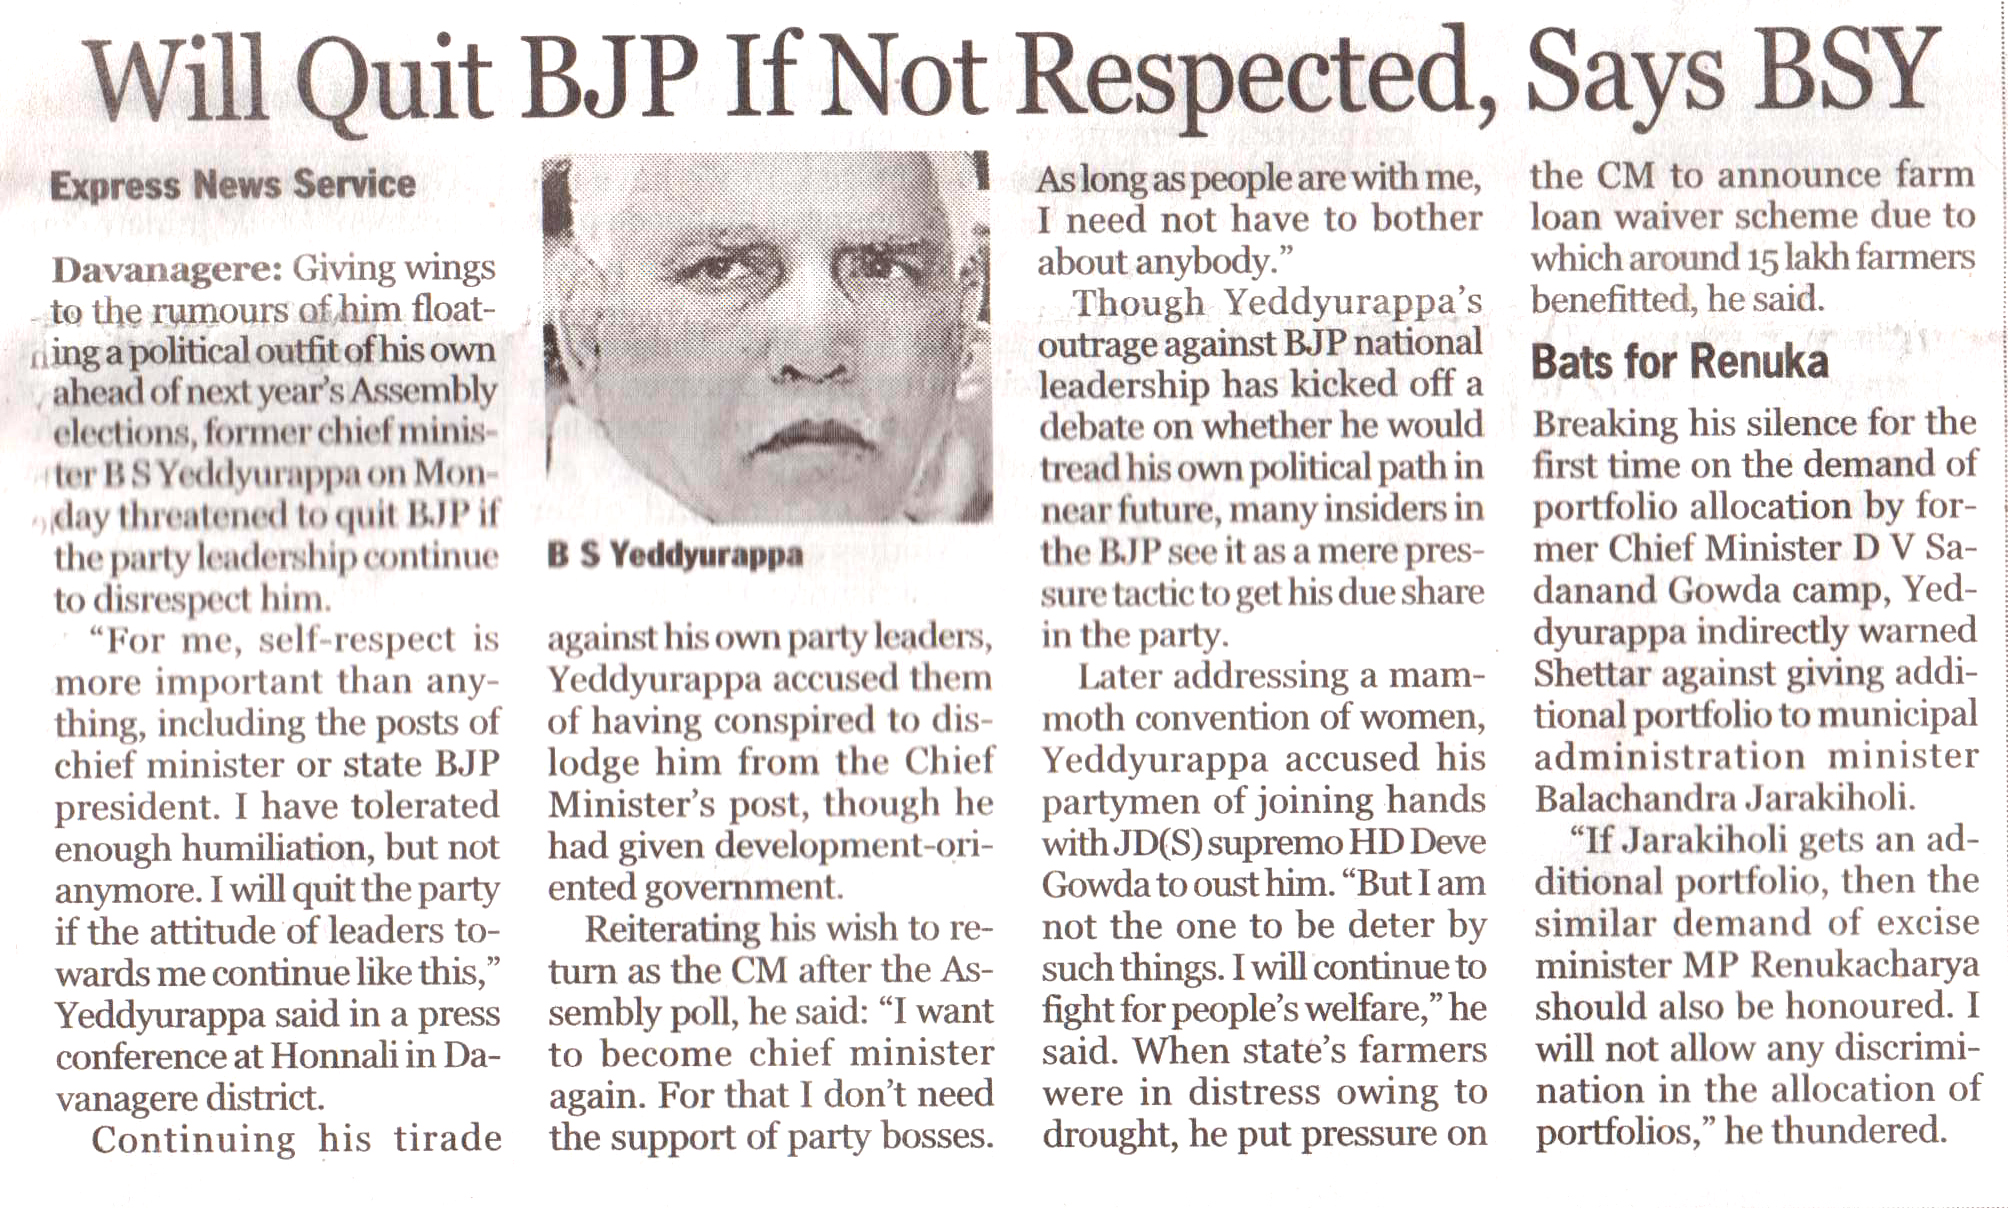 Will quit BJP If Not Respected, Says BSY